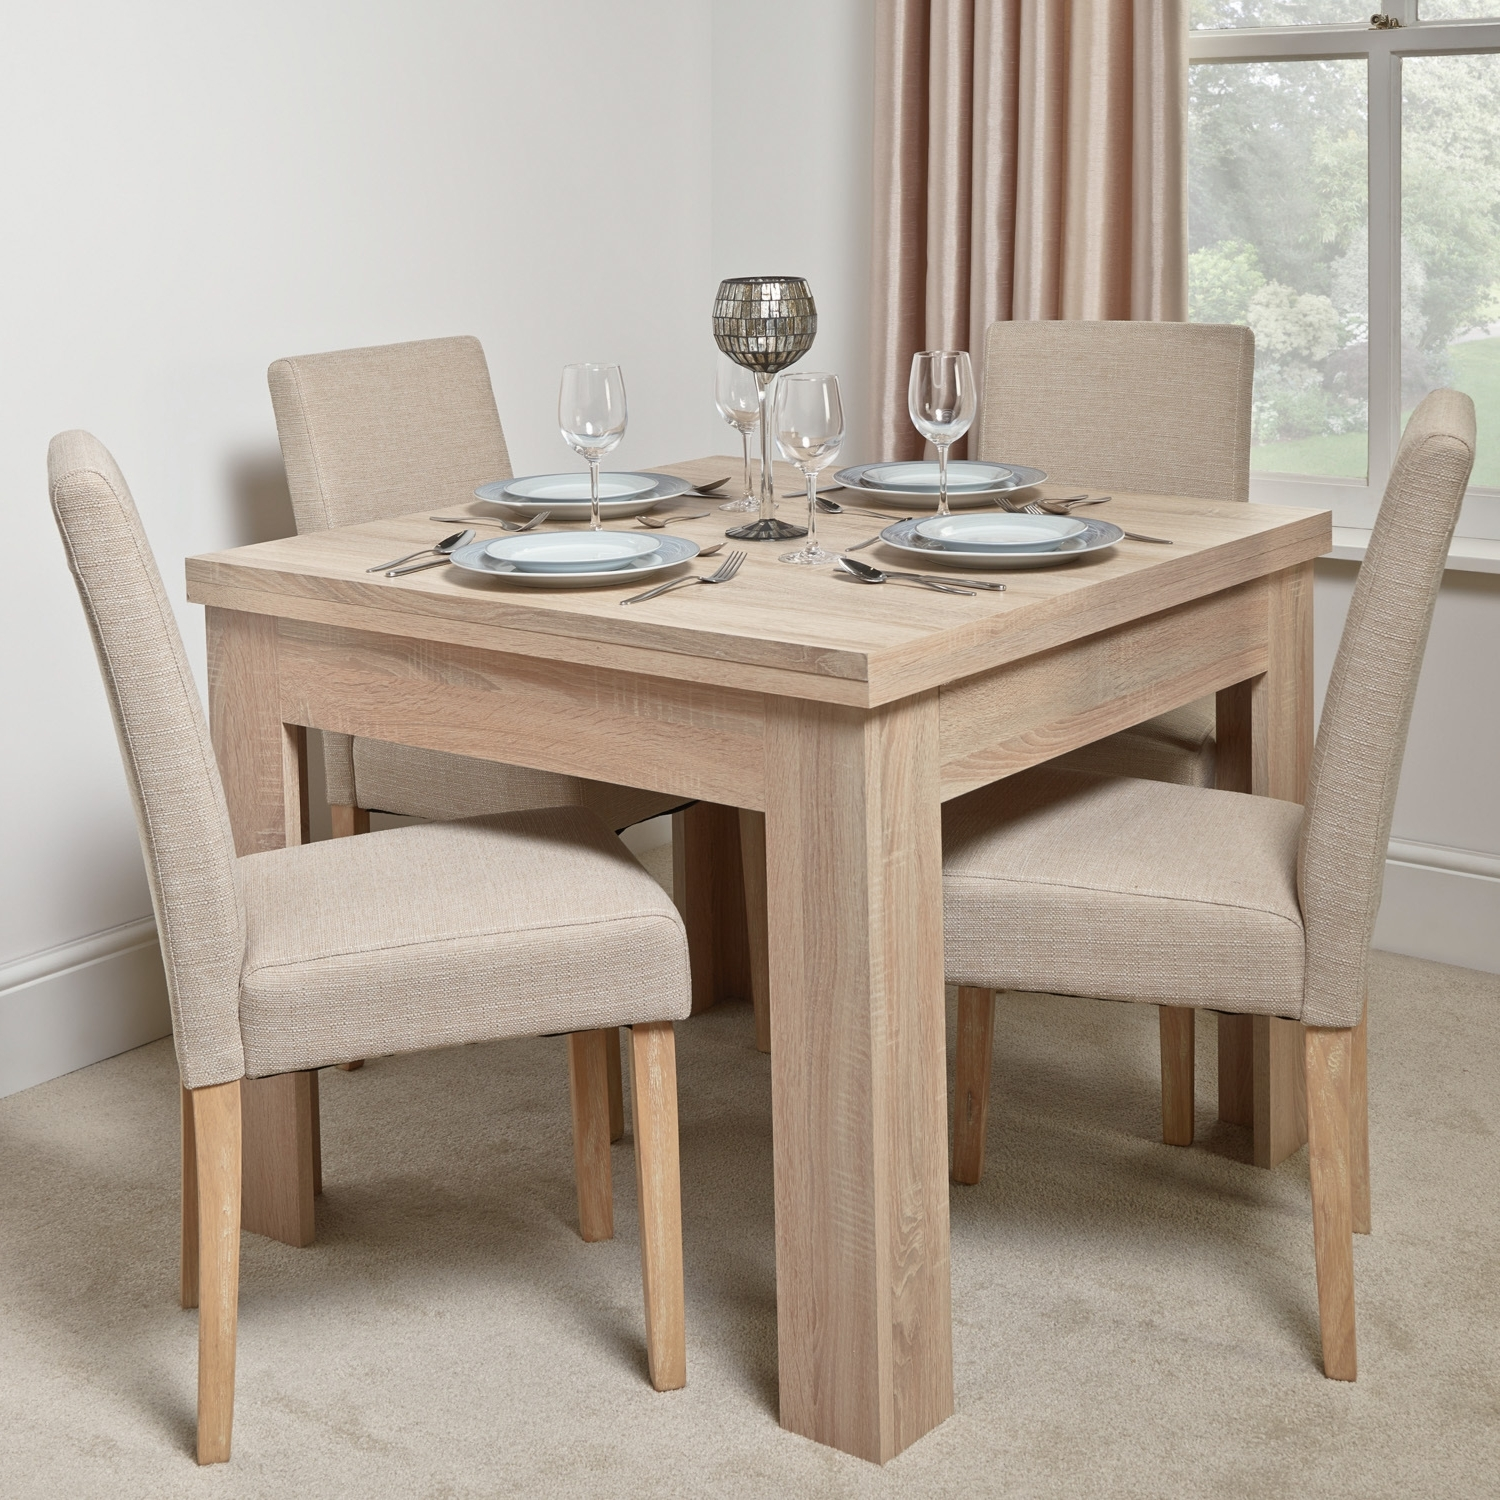 Extendable Dining Sets Pertaining To Most Up To Date Calpe Flip Extending Dining Table (View 6 of 25)